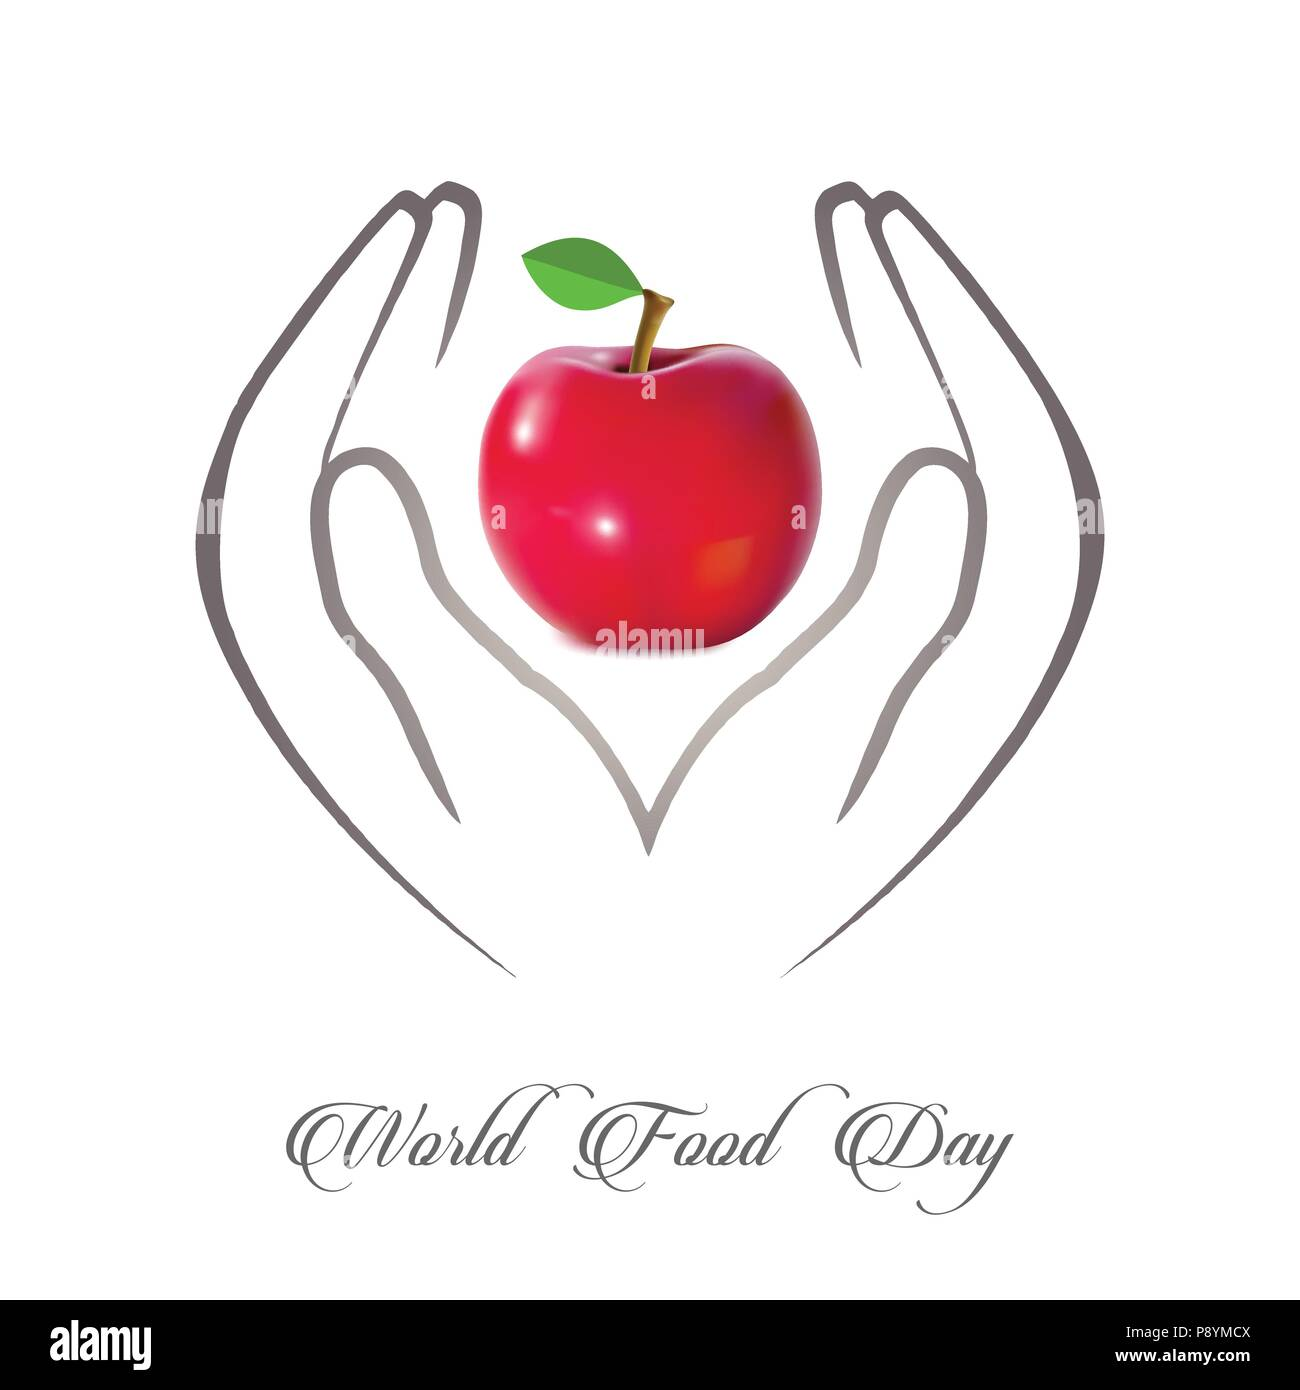 World Food Day Vector Illustration. World Food Day  Cards. World Food Day  poster.. For web design and application interface, also useful for infograp - Stock Image